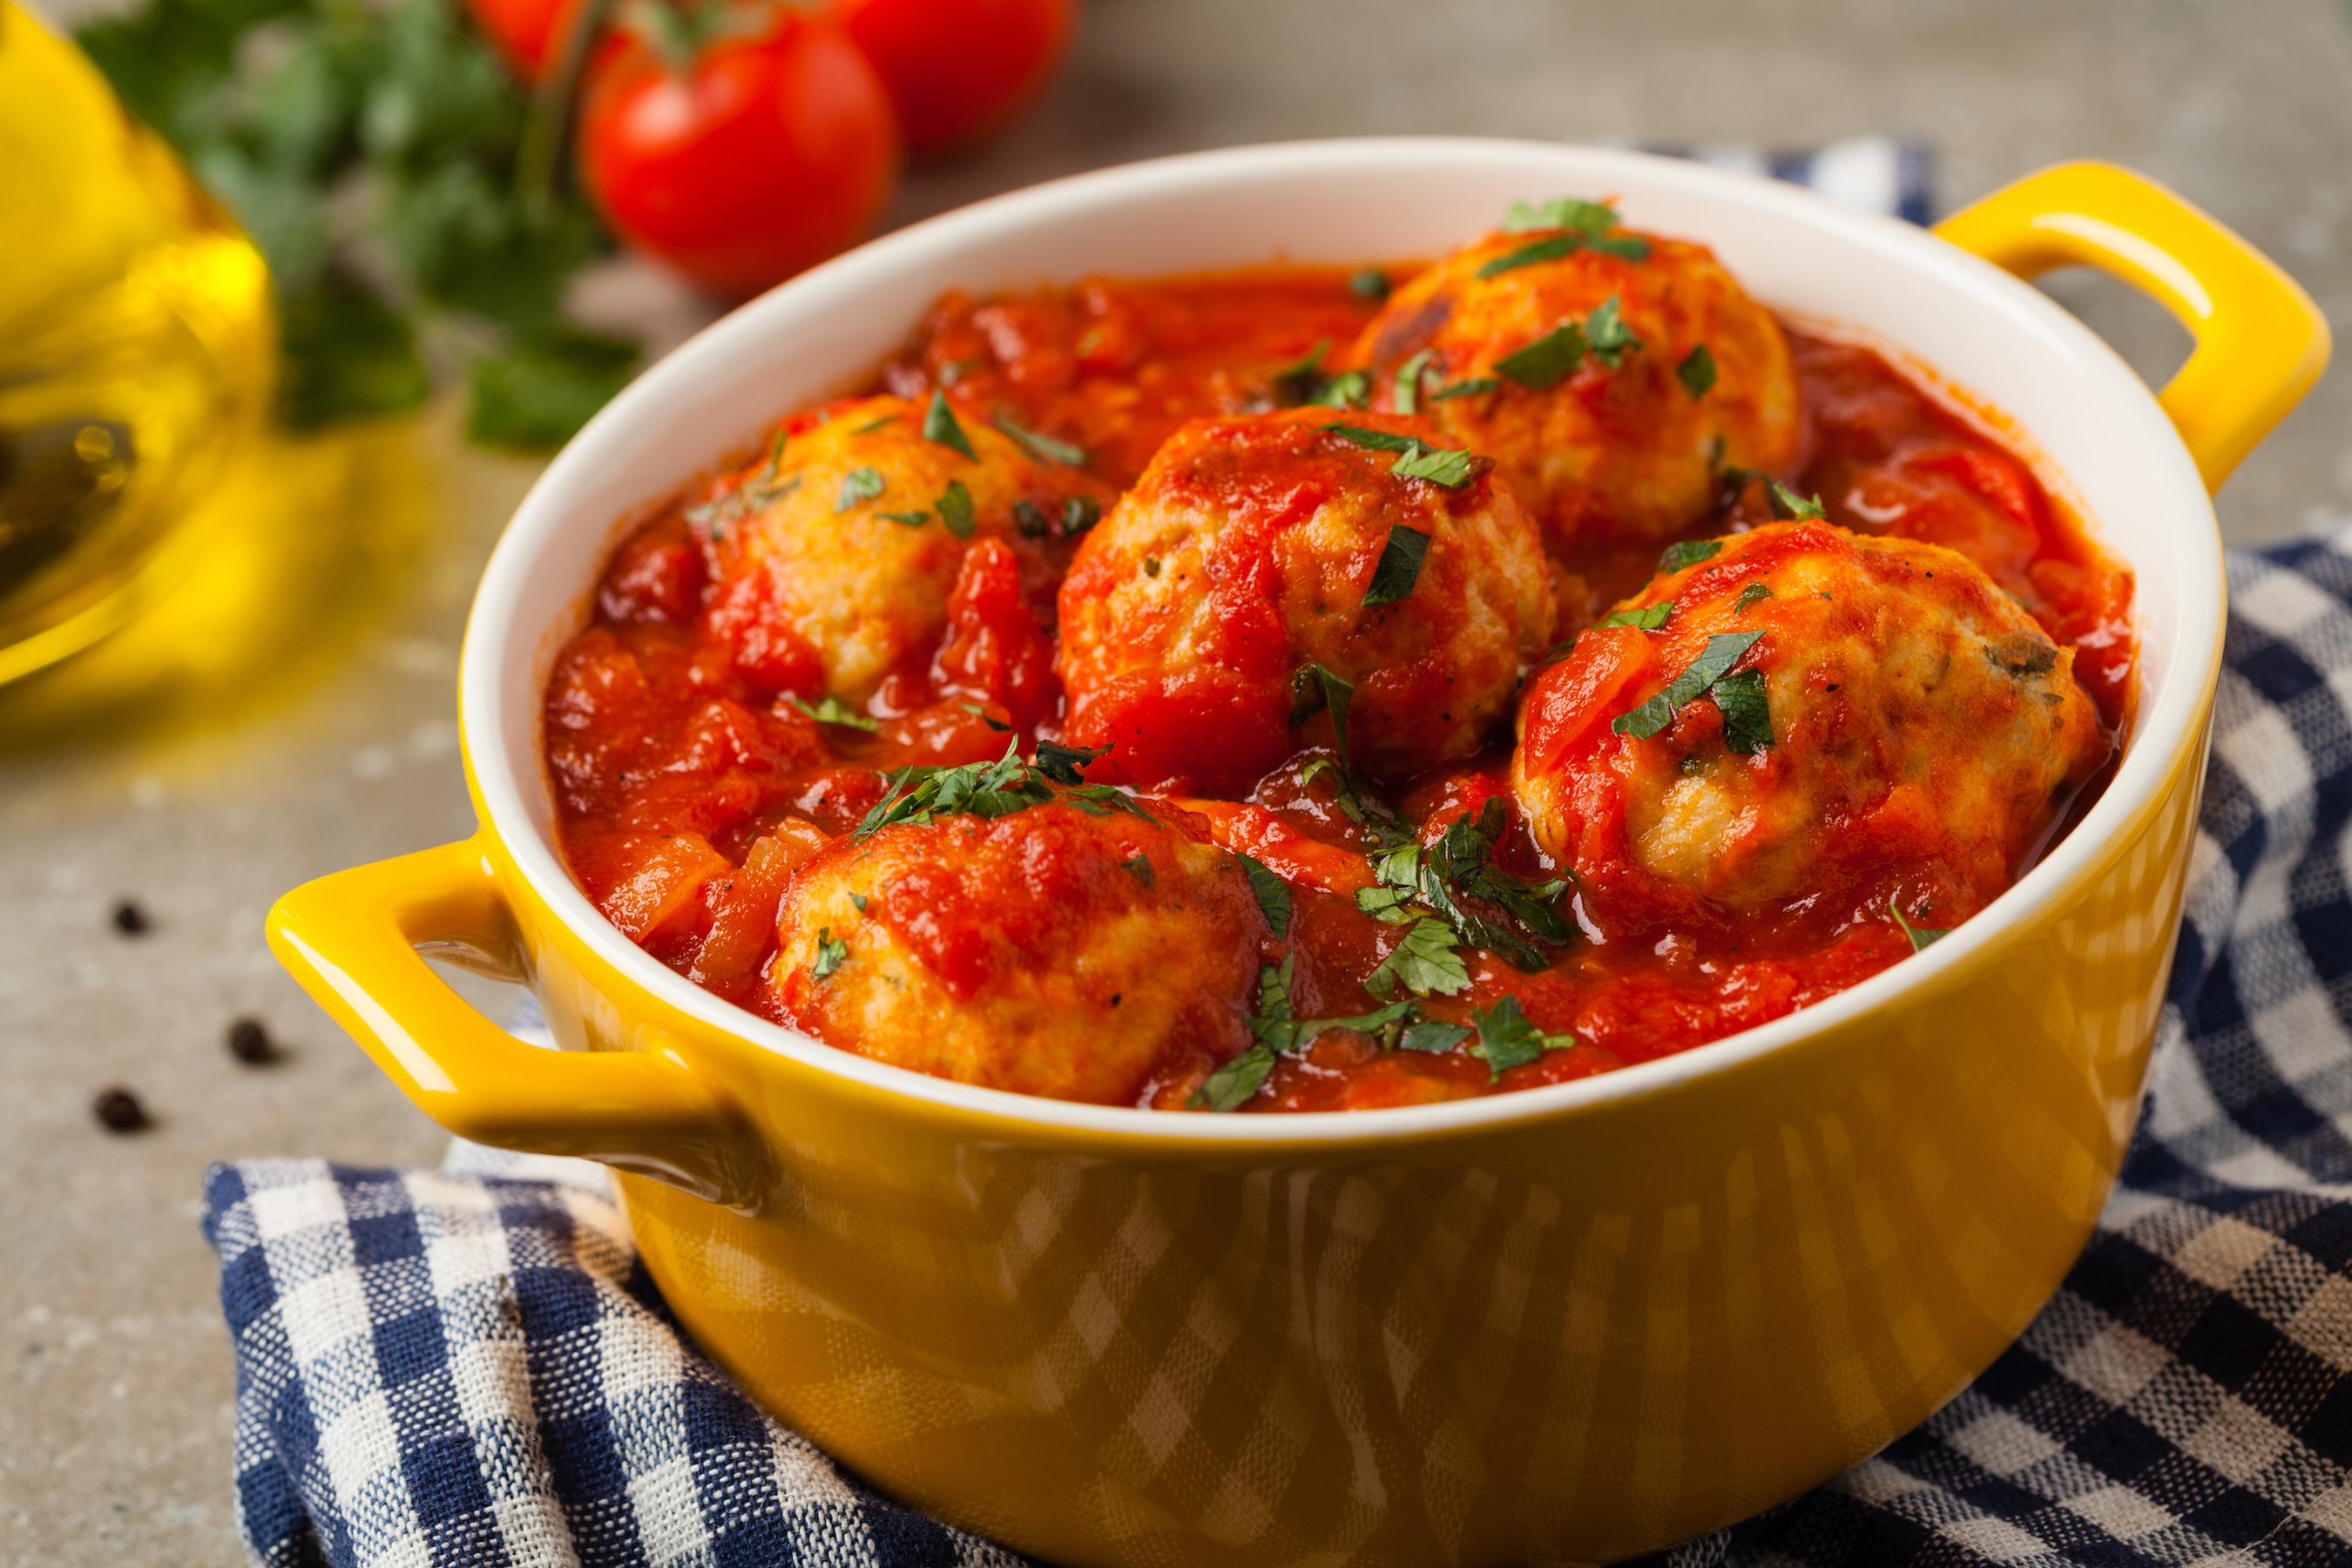 Cheats Chicken Sausage Meatballs with a Spicy Tomato Sauce